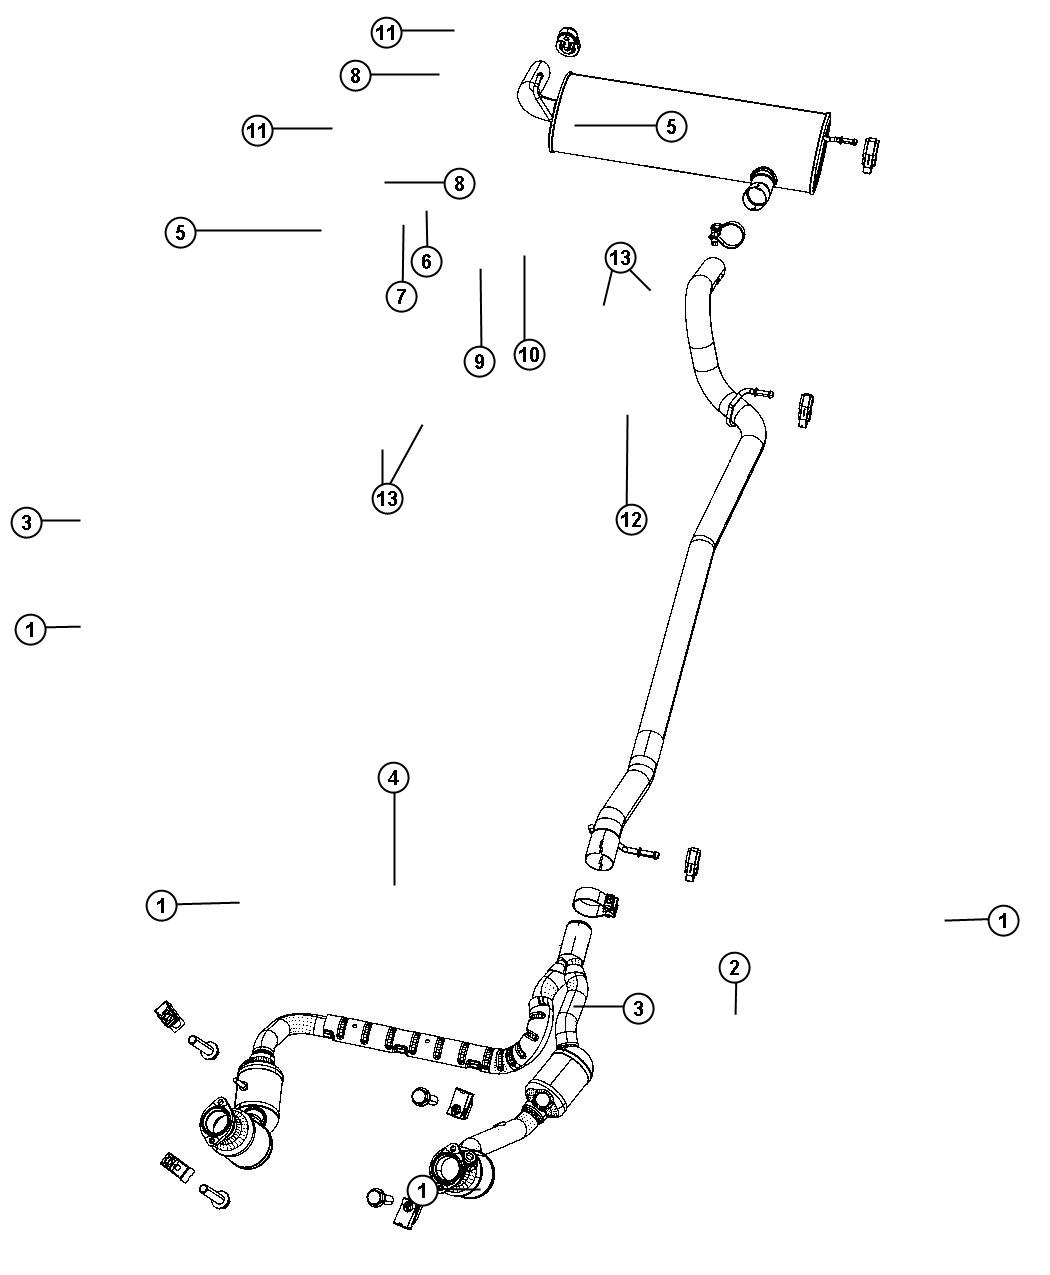 Jeep Wrangler Used For  Pipe And Converter  Exhaust   Complete Chassis Parts Module